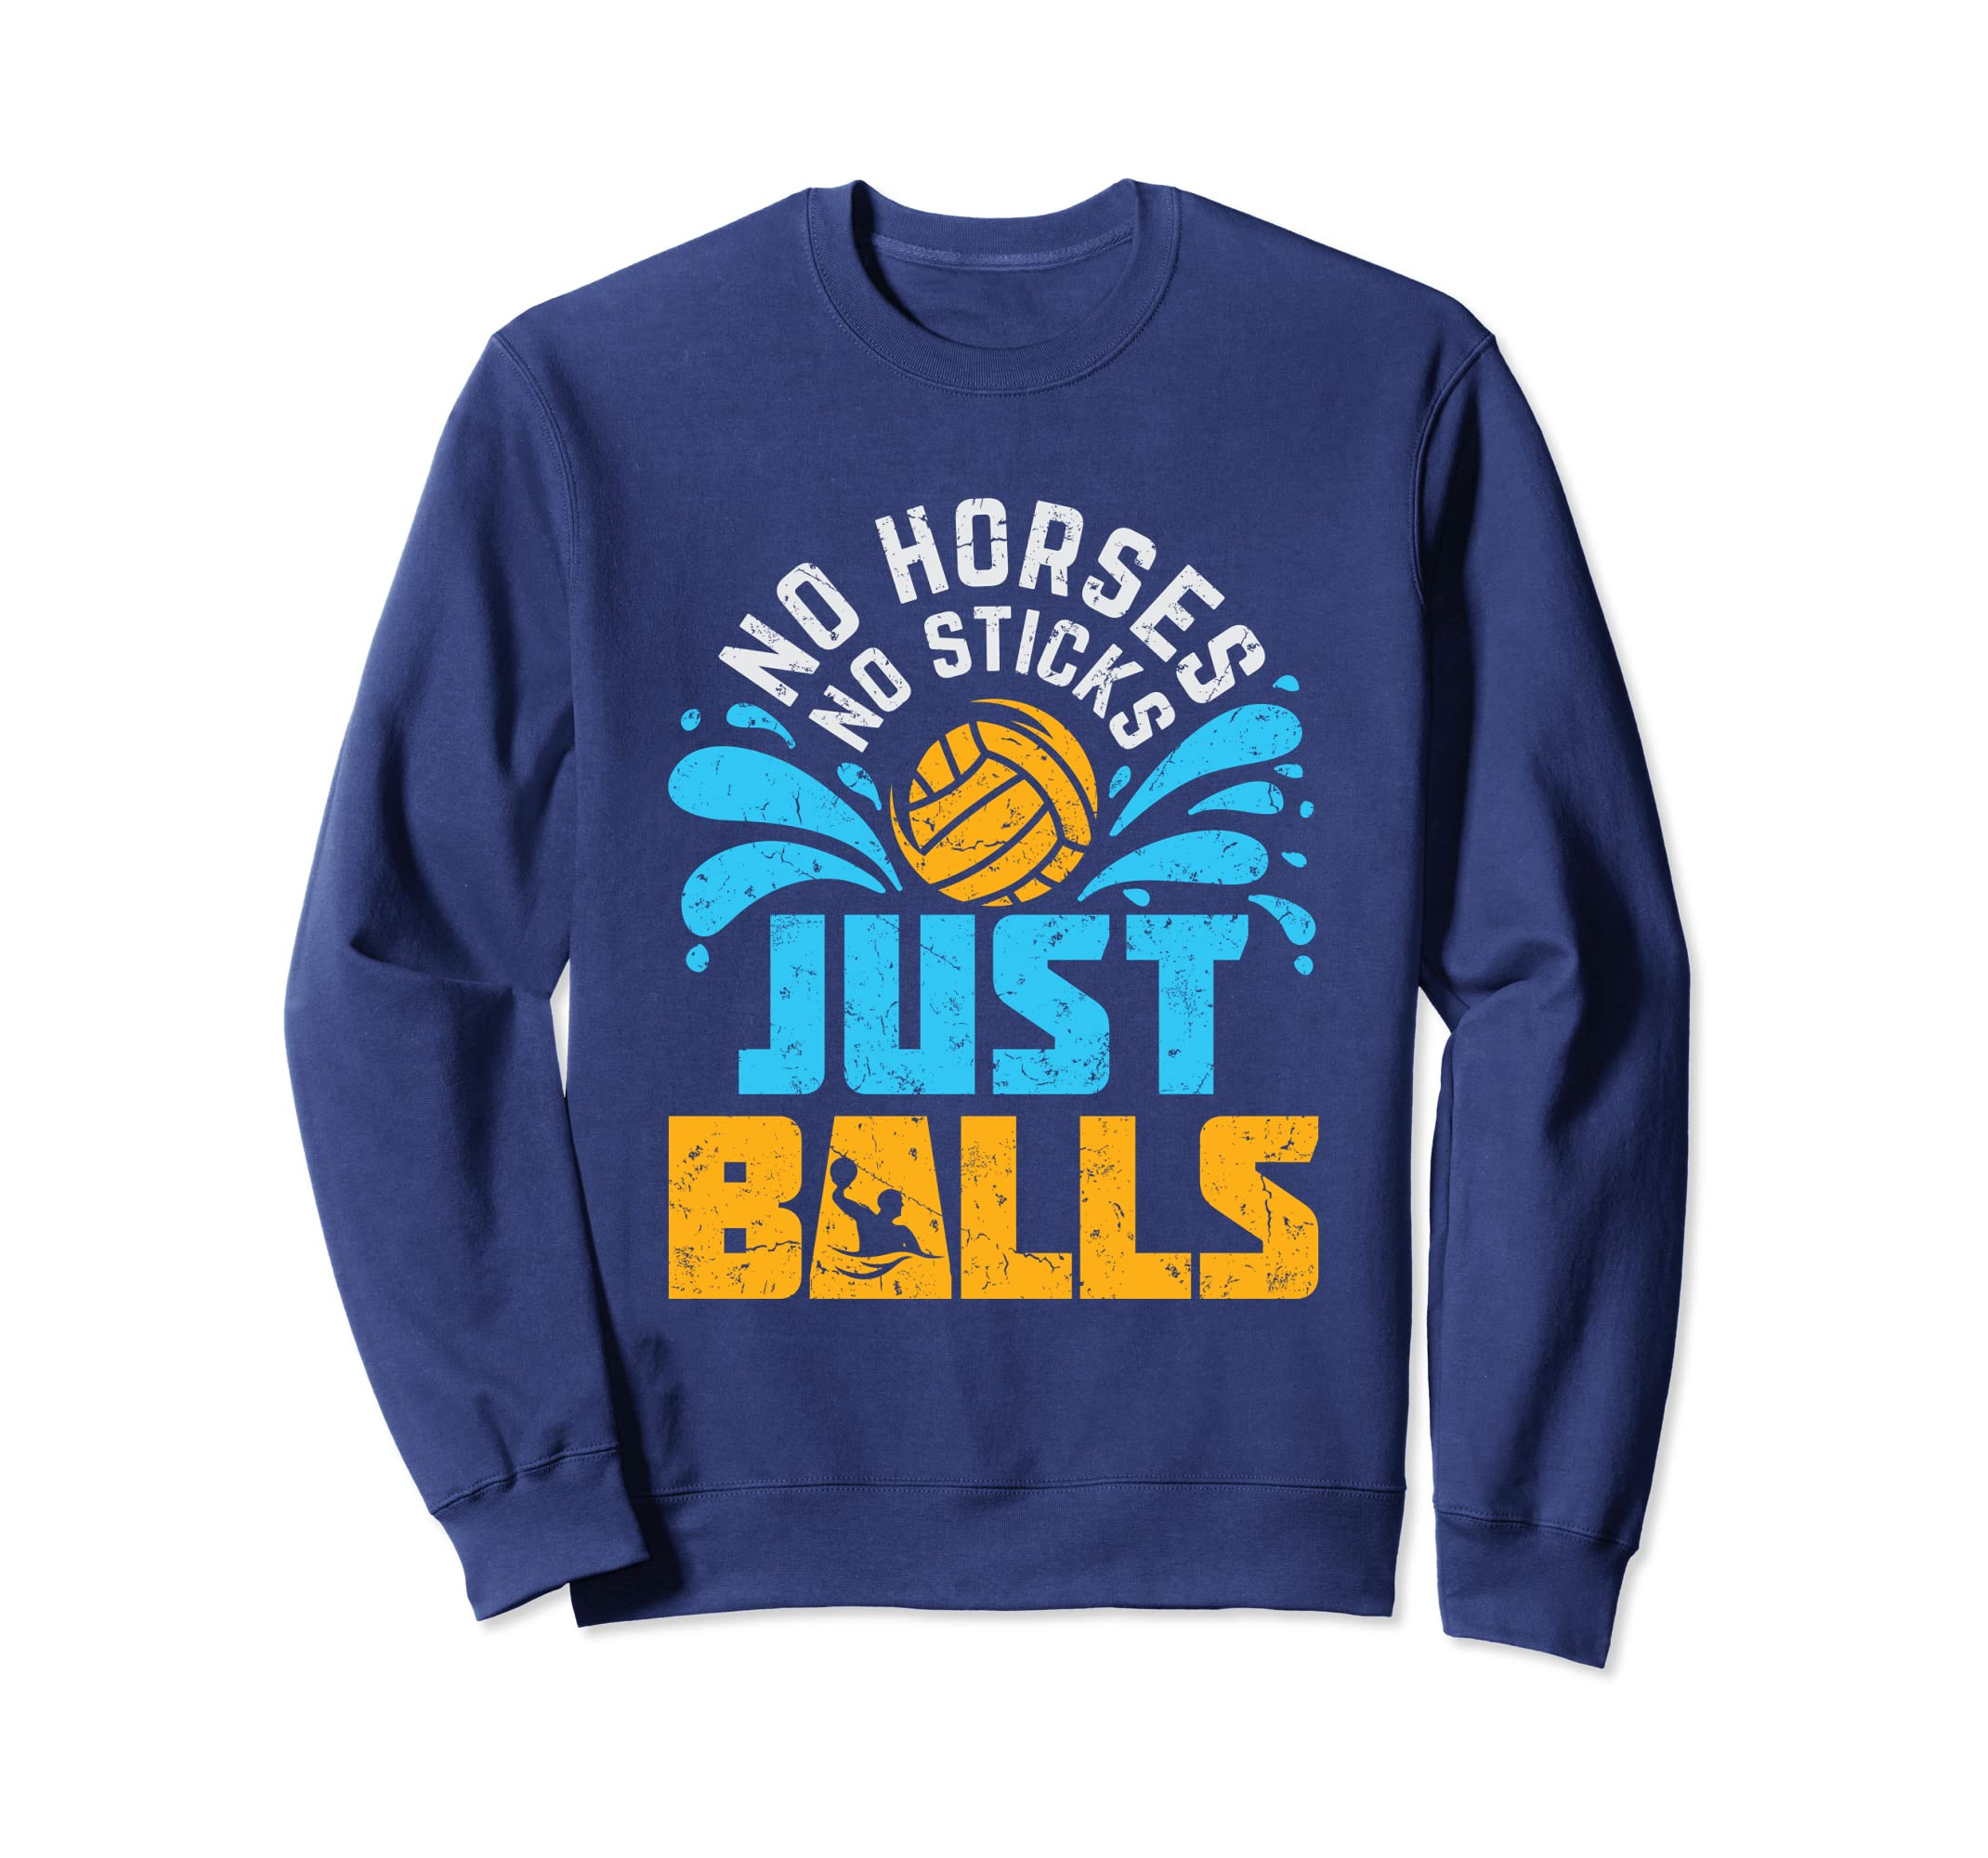 17710a13 Amazon.com: Funny Water Polo Sweatshirt Just Balls Saying Player Gifts:  Clothing